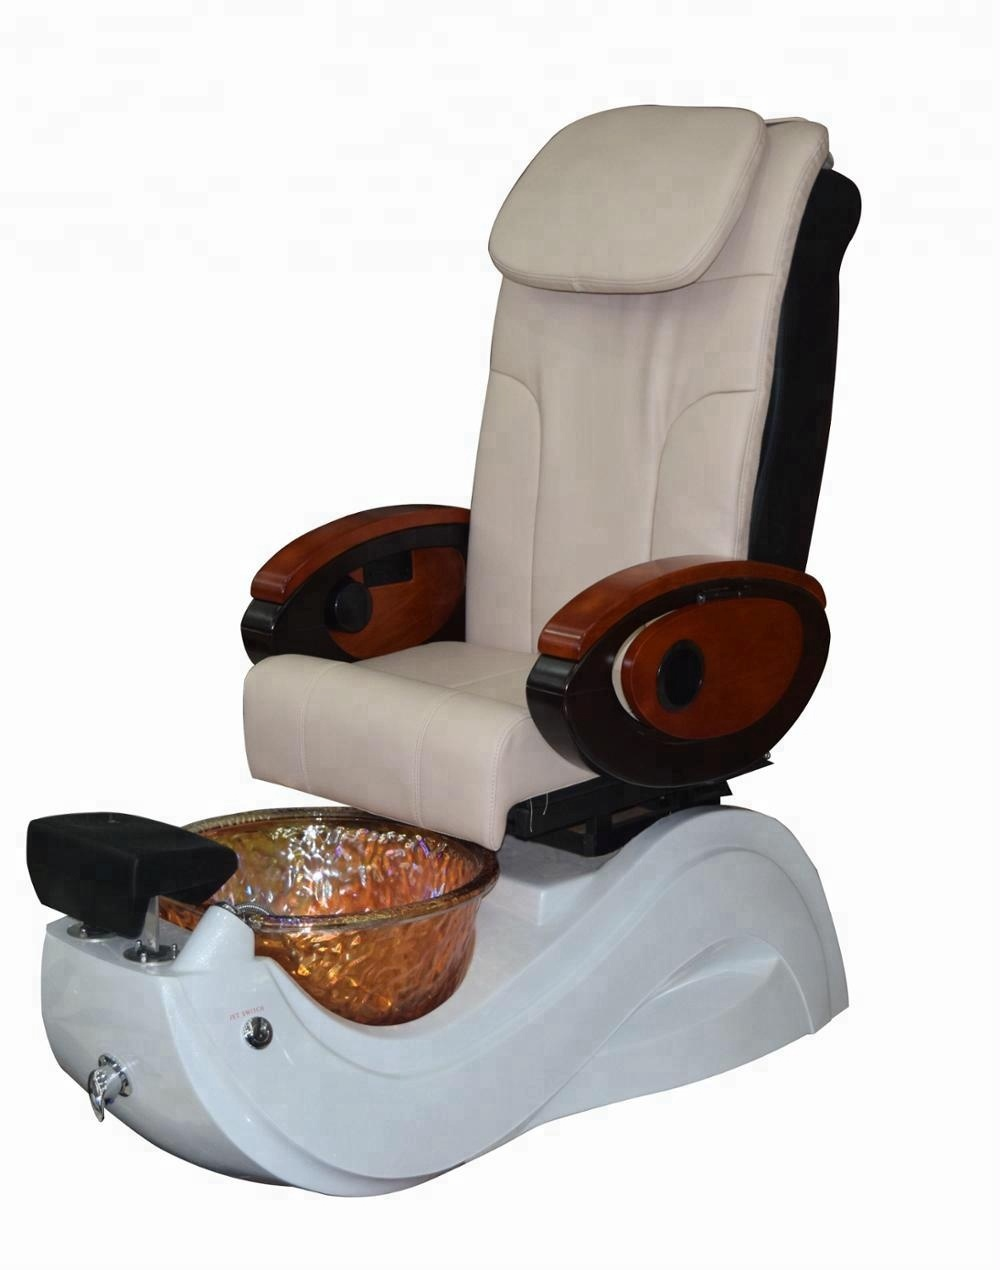 pedicure spa chair wholesaler of pedicure chairs for spa and salon spa and equipment